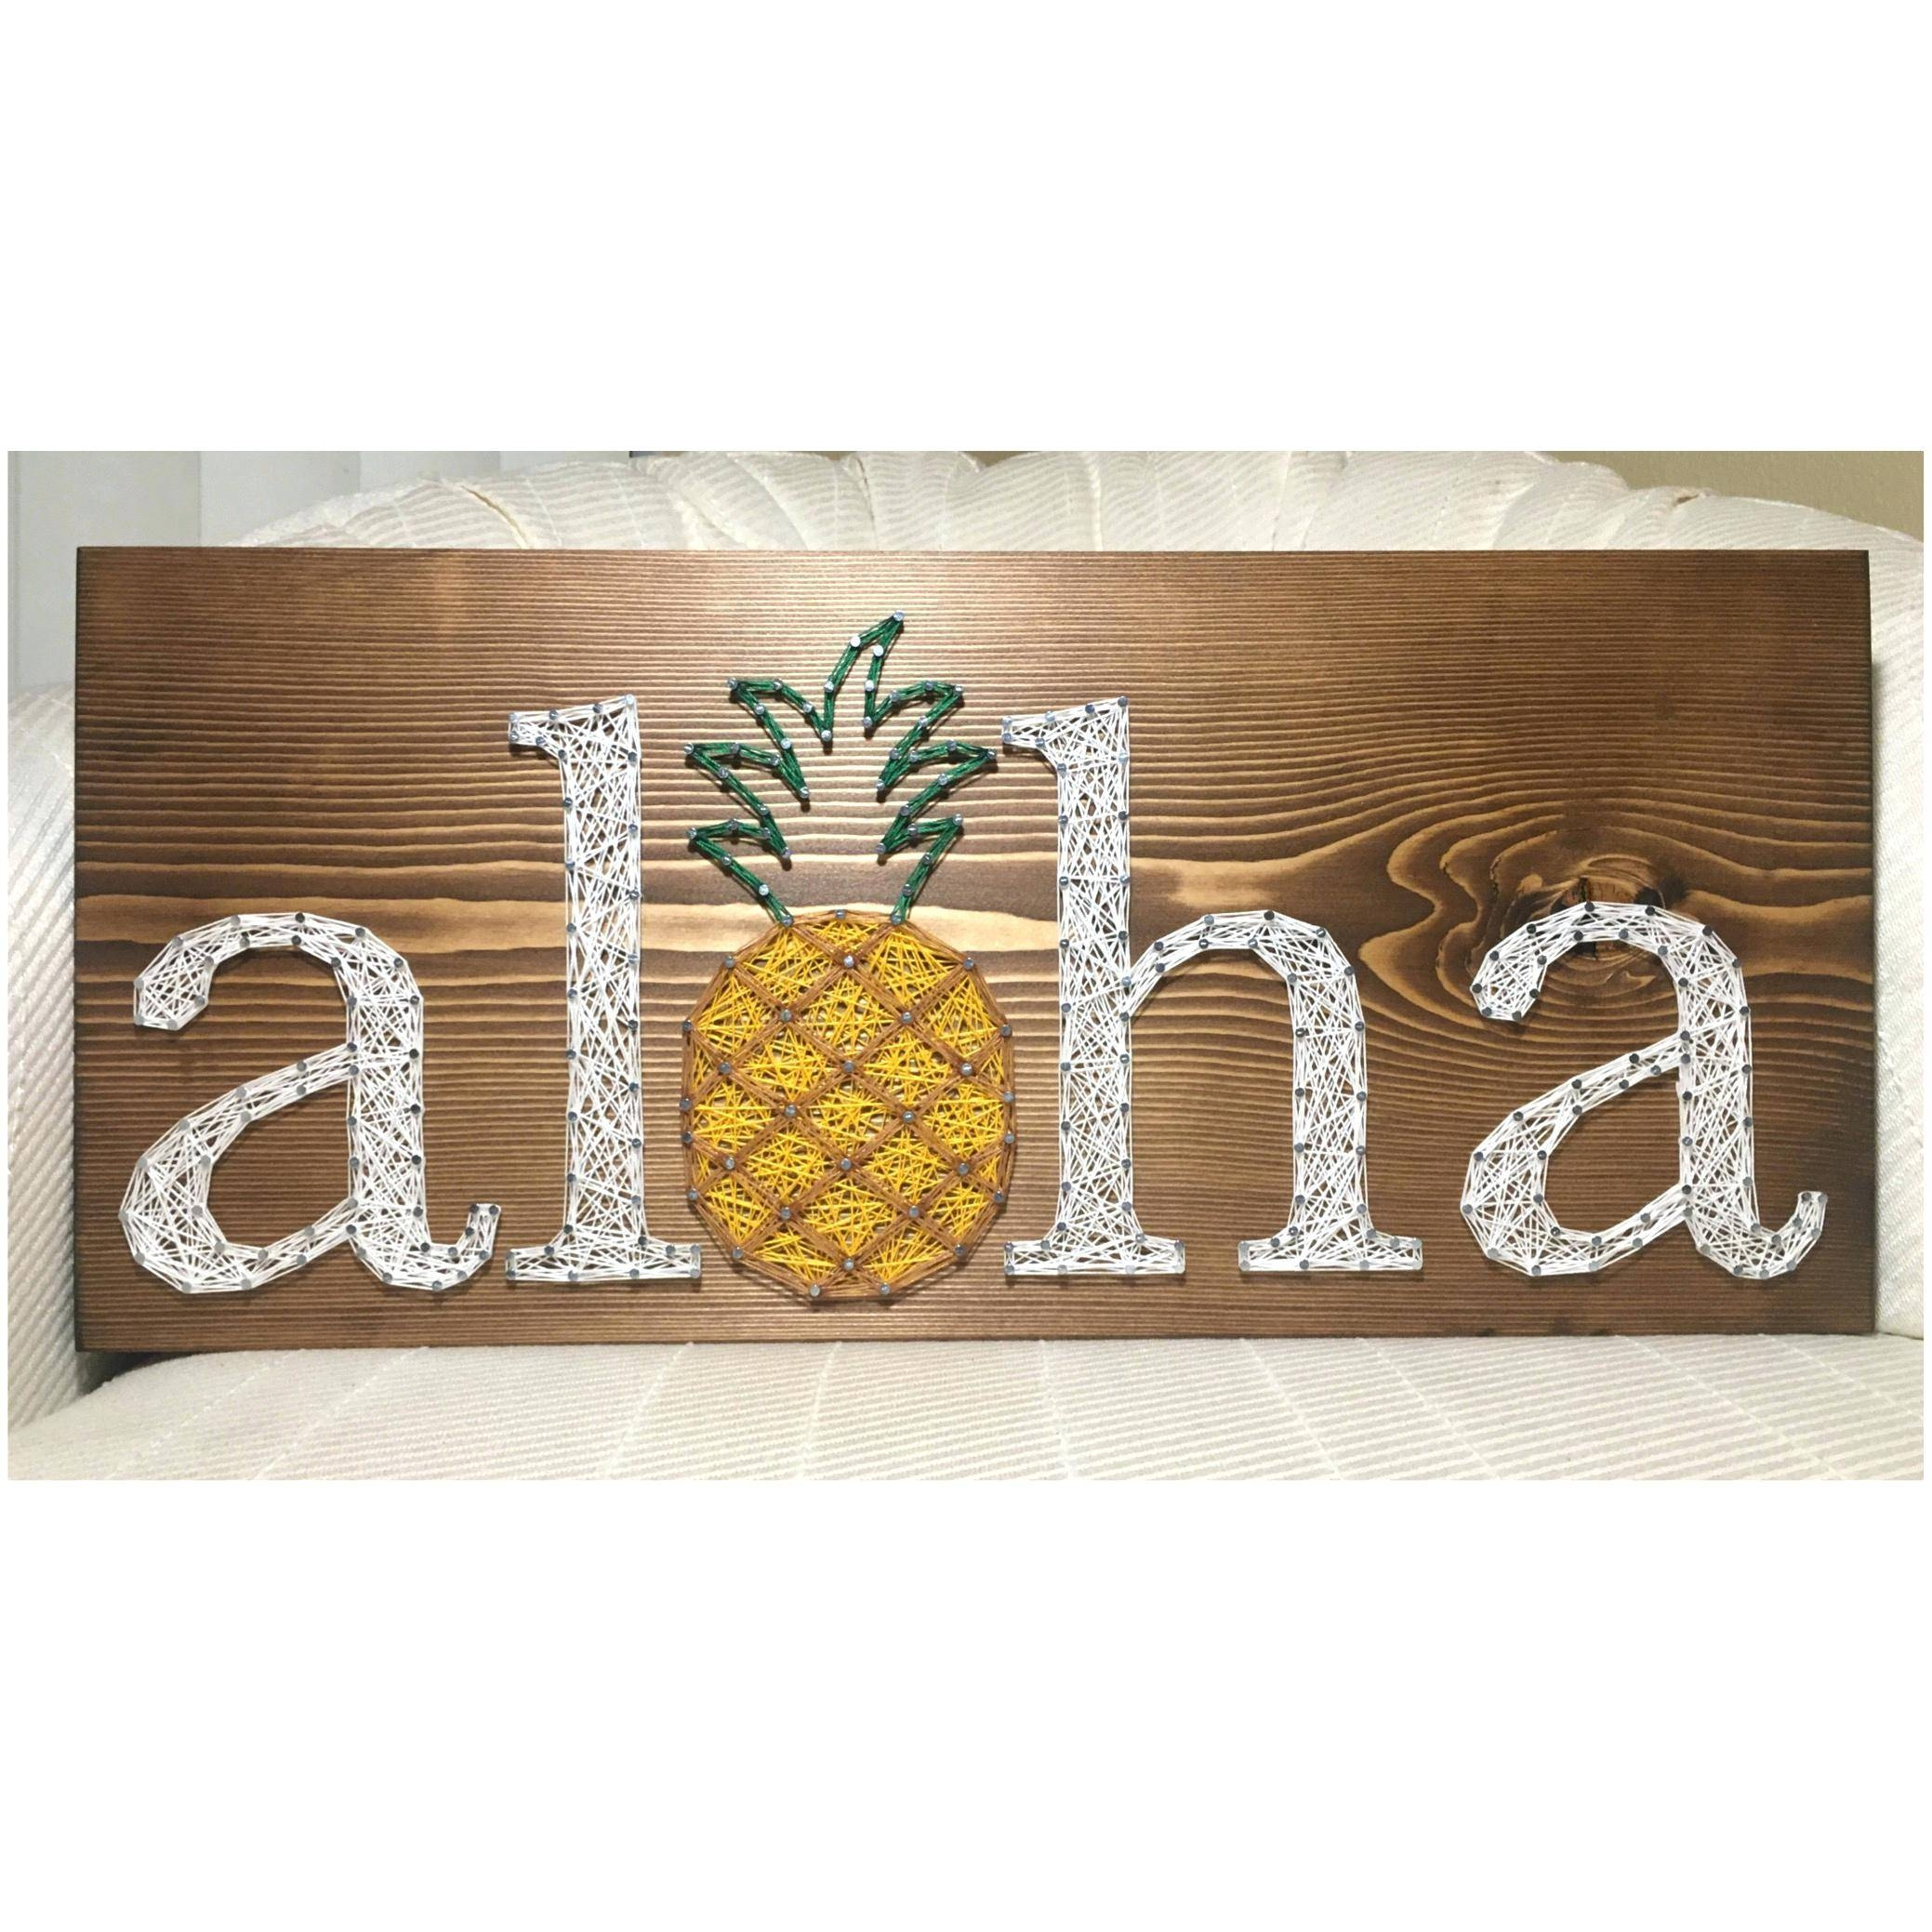 Articles With Hawaii Wooden Wall Art Tag: Hawaiian Wall Art Pertaining To Most Recent Hawaiian Wall Art Decor (View 4 of 30)